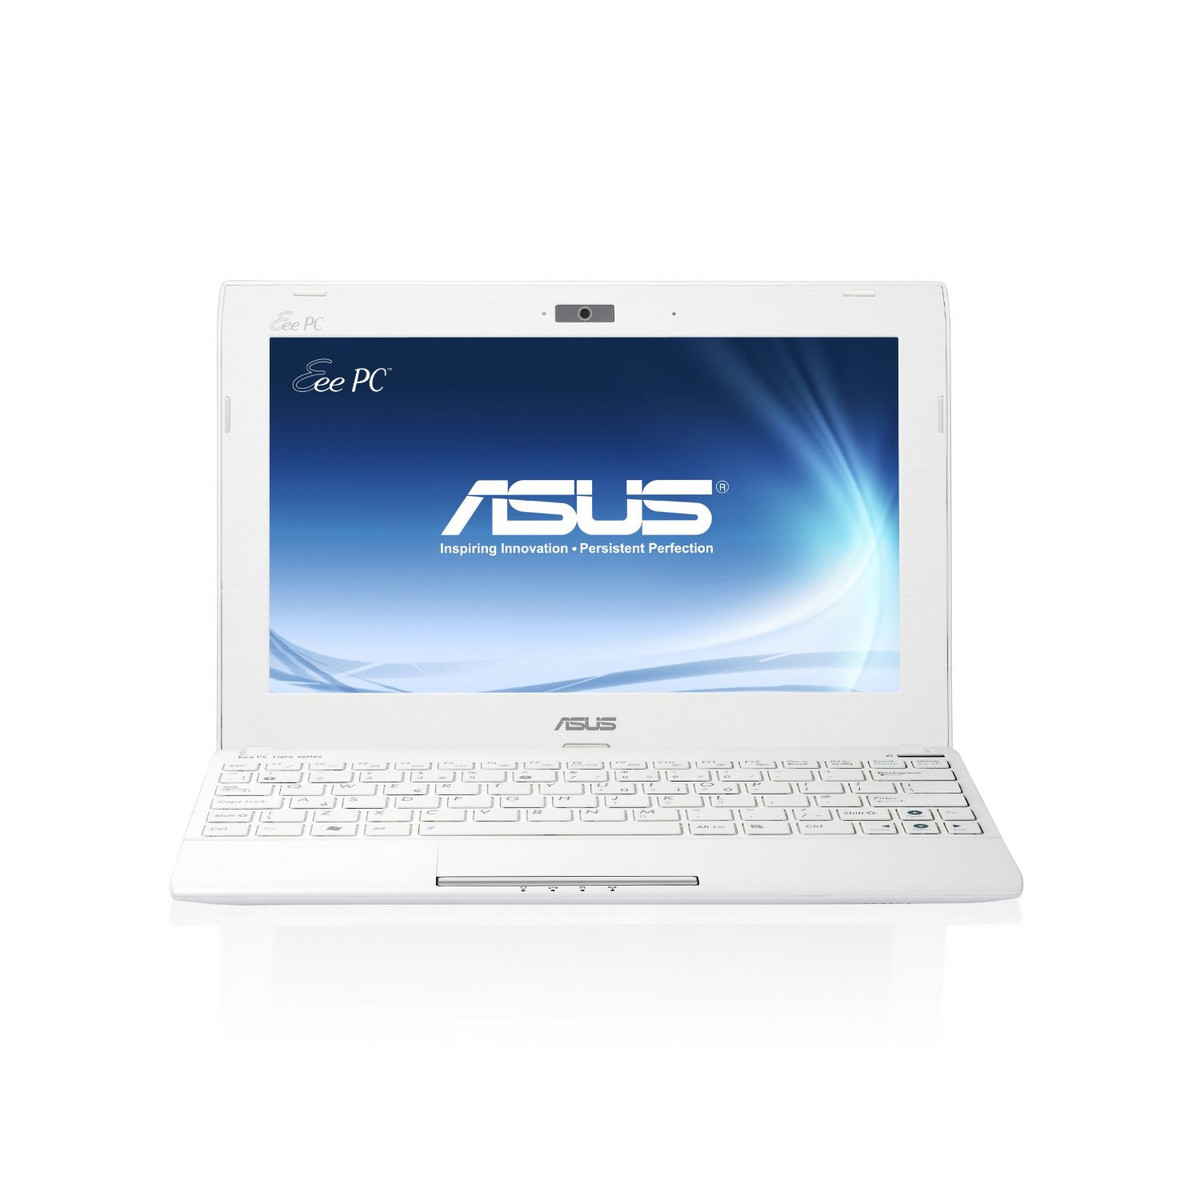 Asus Eee PC 1025C Netbook Smart Camera Drivers for Windows 10